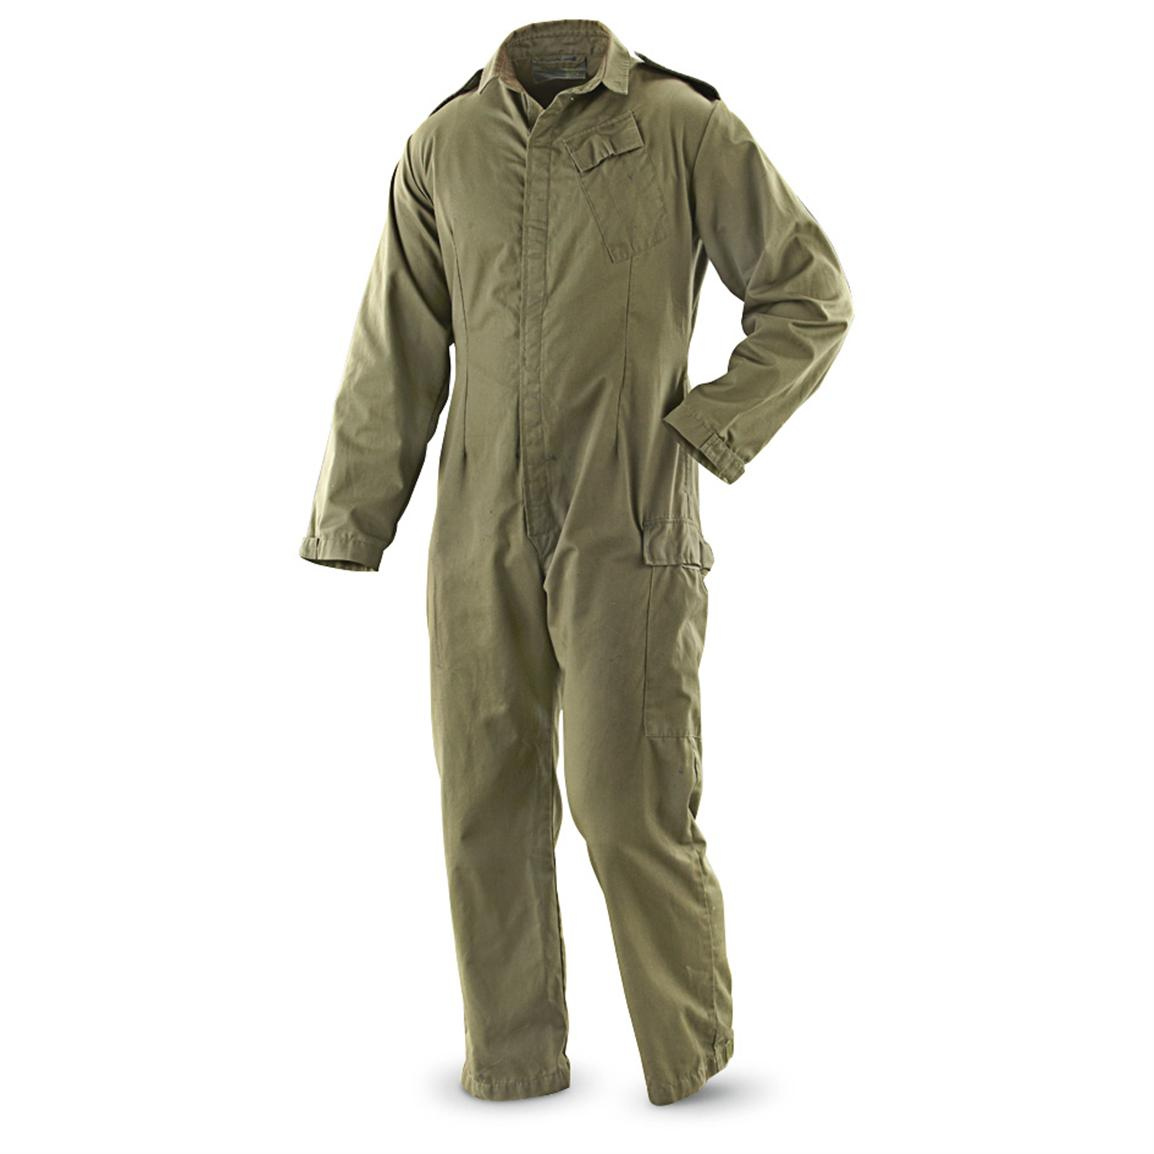 British Military Surplus Work Coveralls, Like New